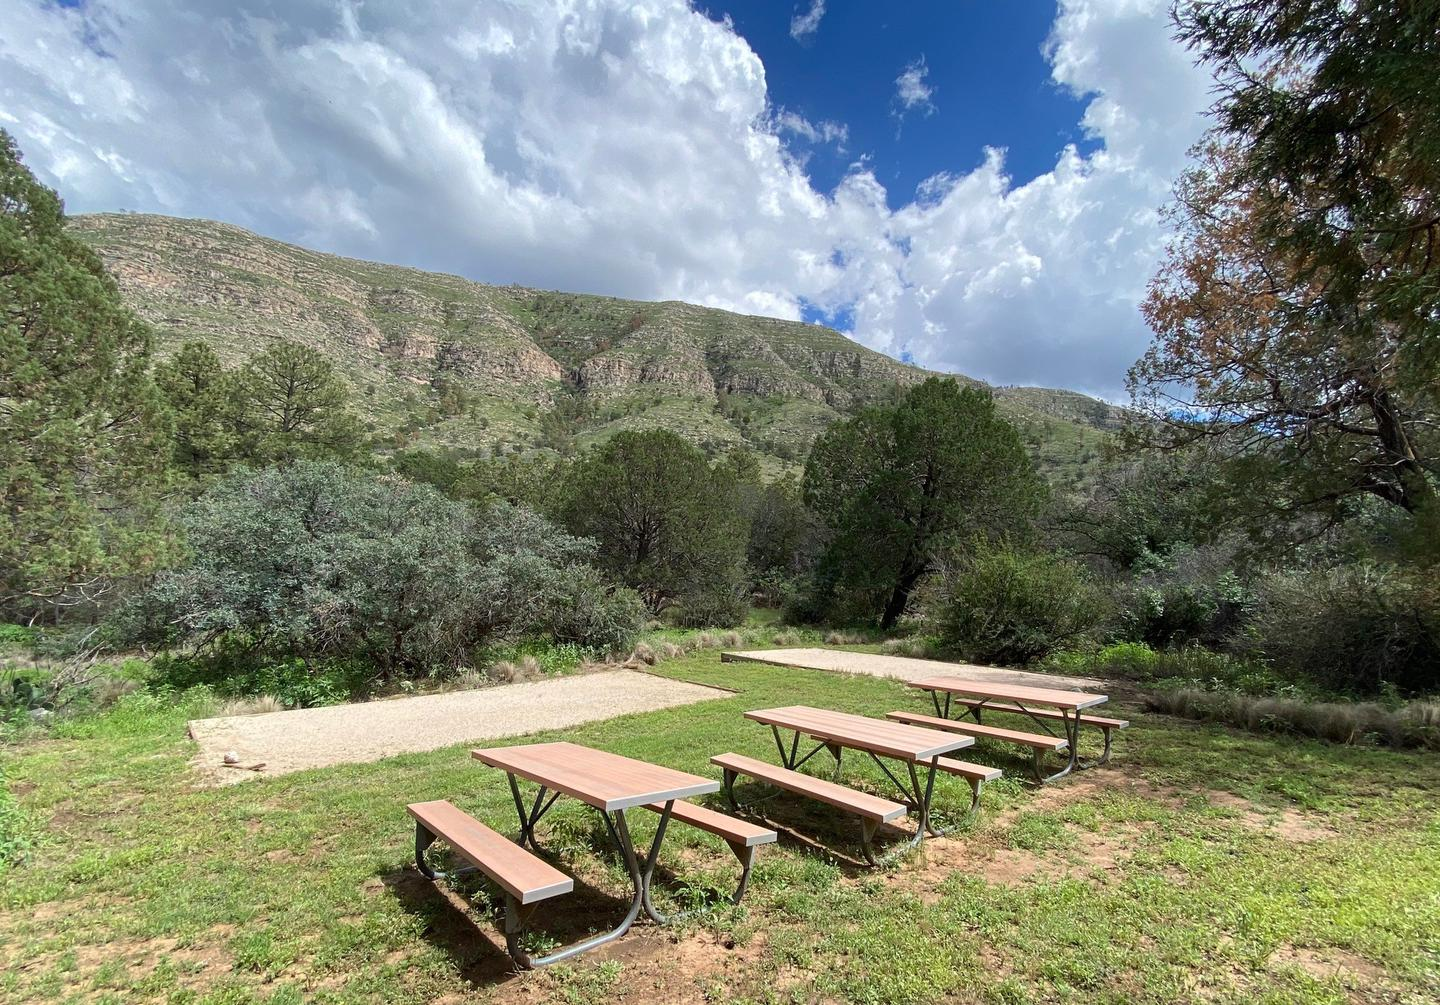 Dog Canyon Group Campsite with two tent pads delineated with landscape timbers and filled with fine crushed gravel. Three picnic tables are located in an open grassy area for groups to gather.Dog Canyon group campsite with two tent pads and three picnic tables.